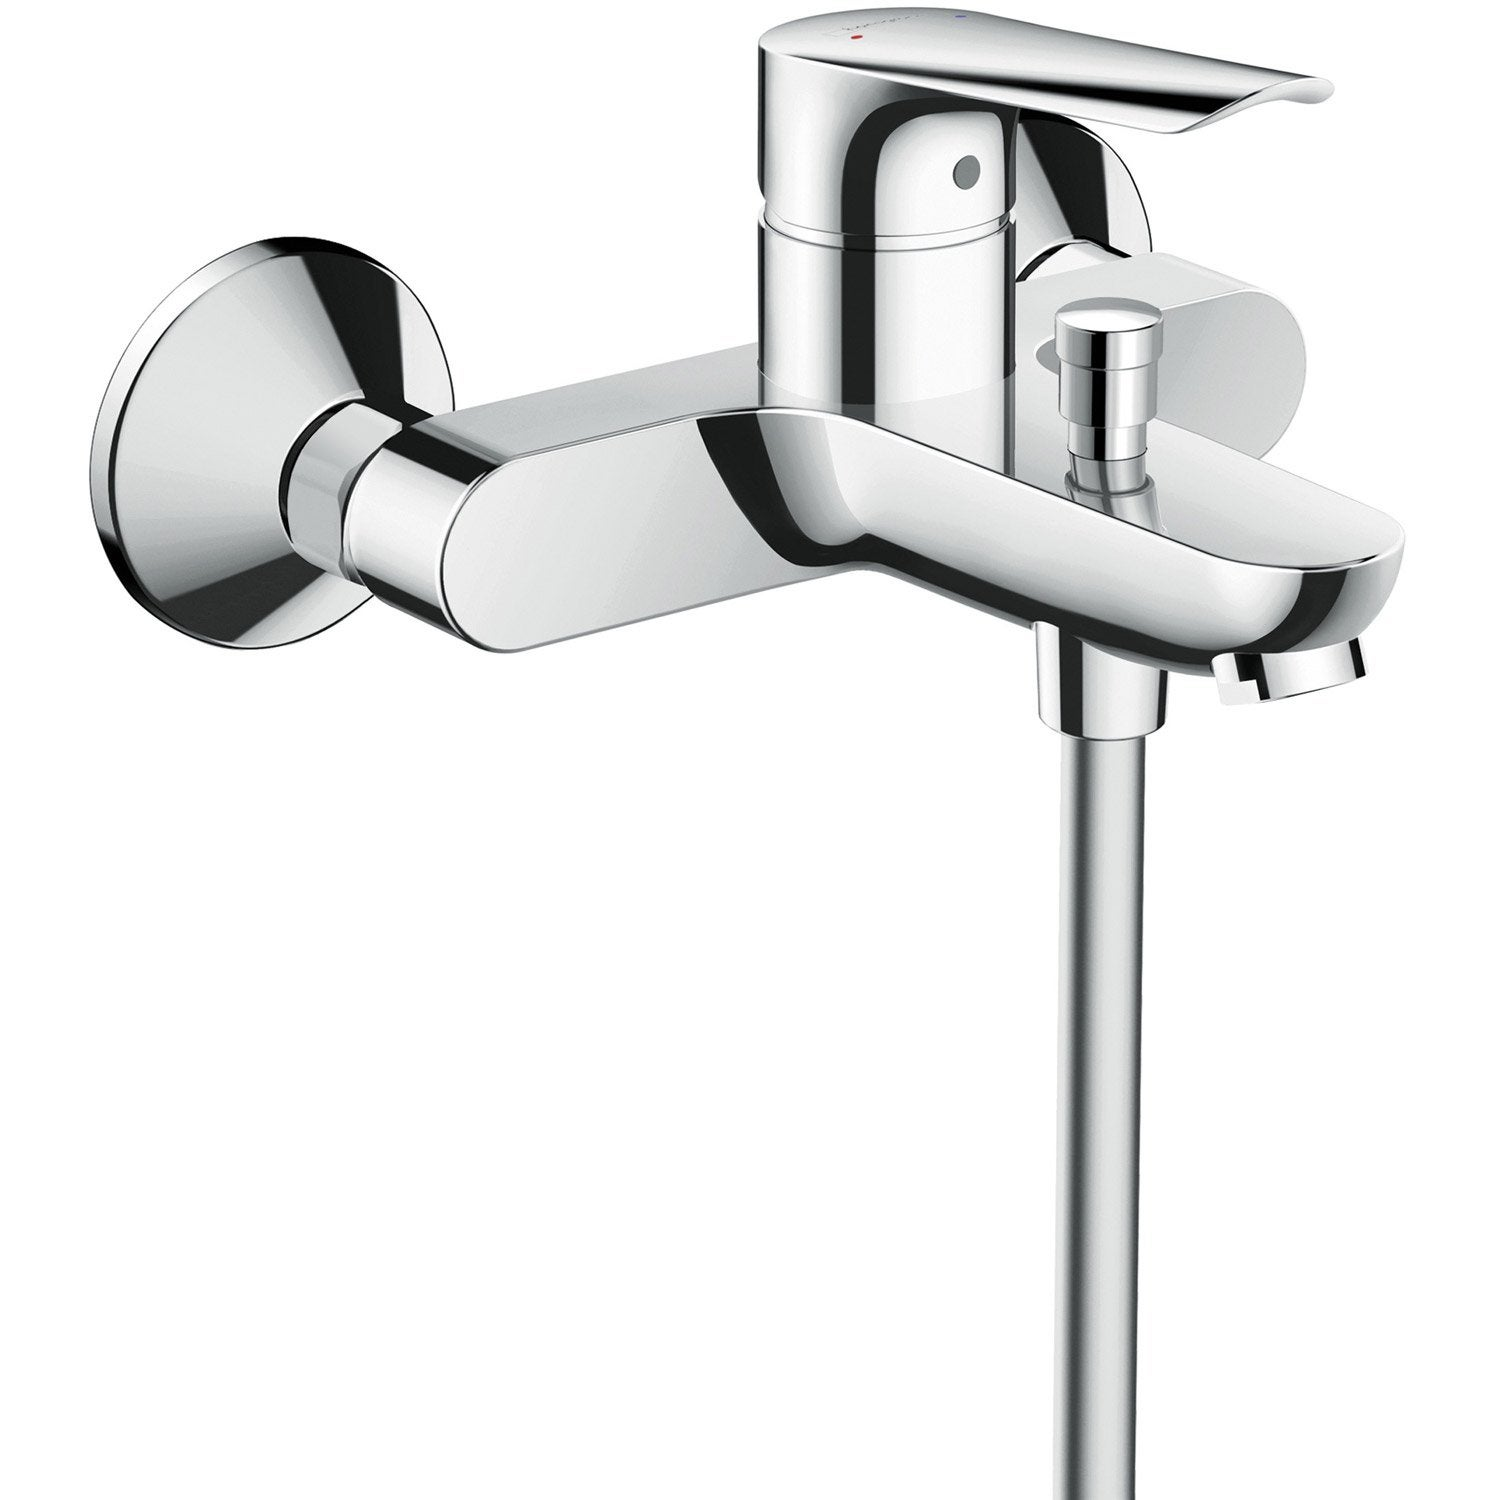 Mitigeur thermostatique de baignoire chrome brillant, HANSGROHE Logis